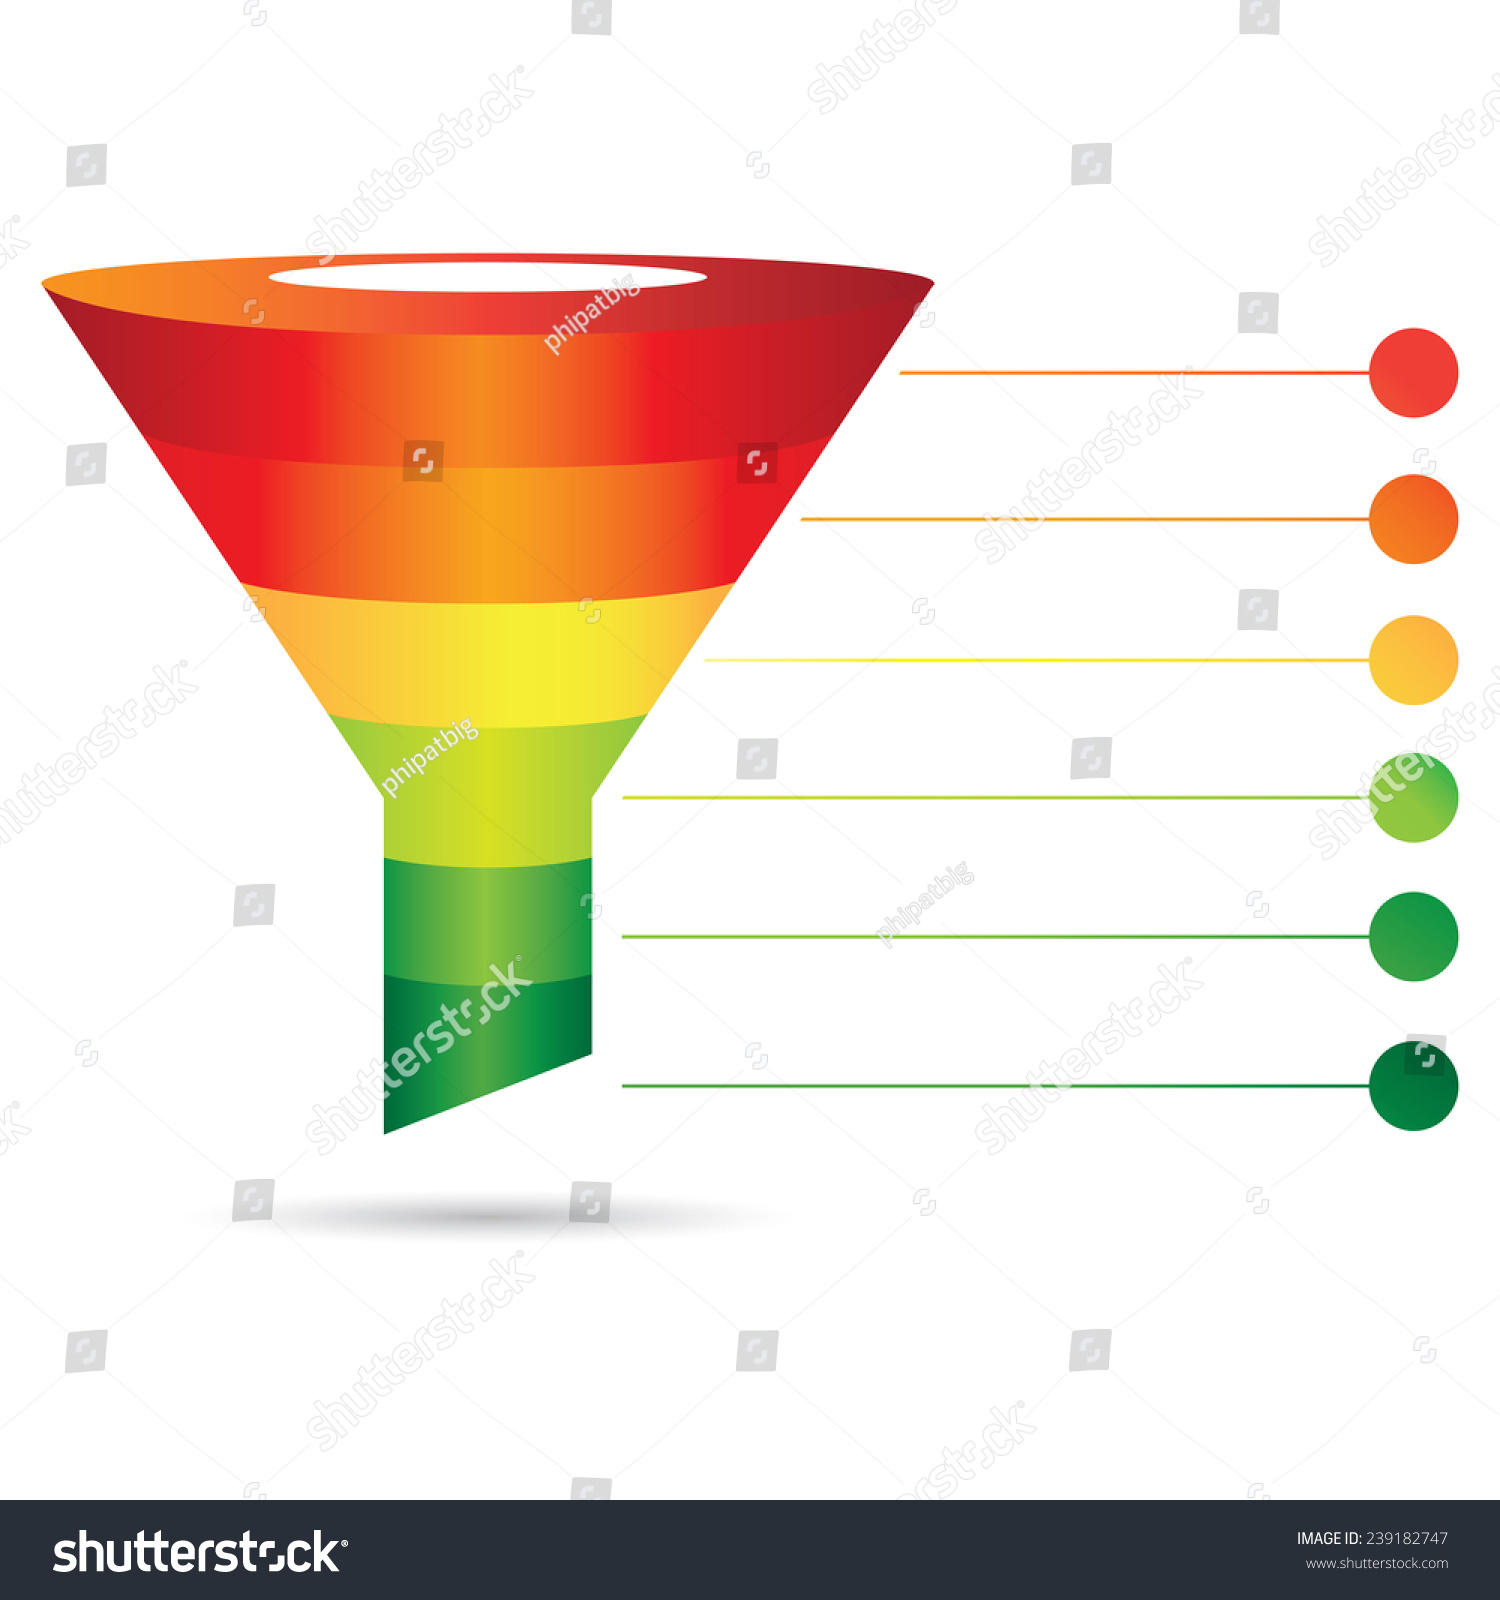 Filter diagram funnel diagram sale marketing stock vector filter diagram funnel diagram sale marketing process chart pooptronica Images